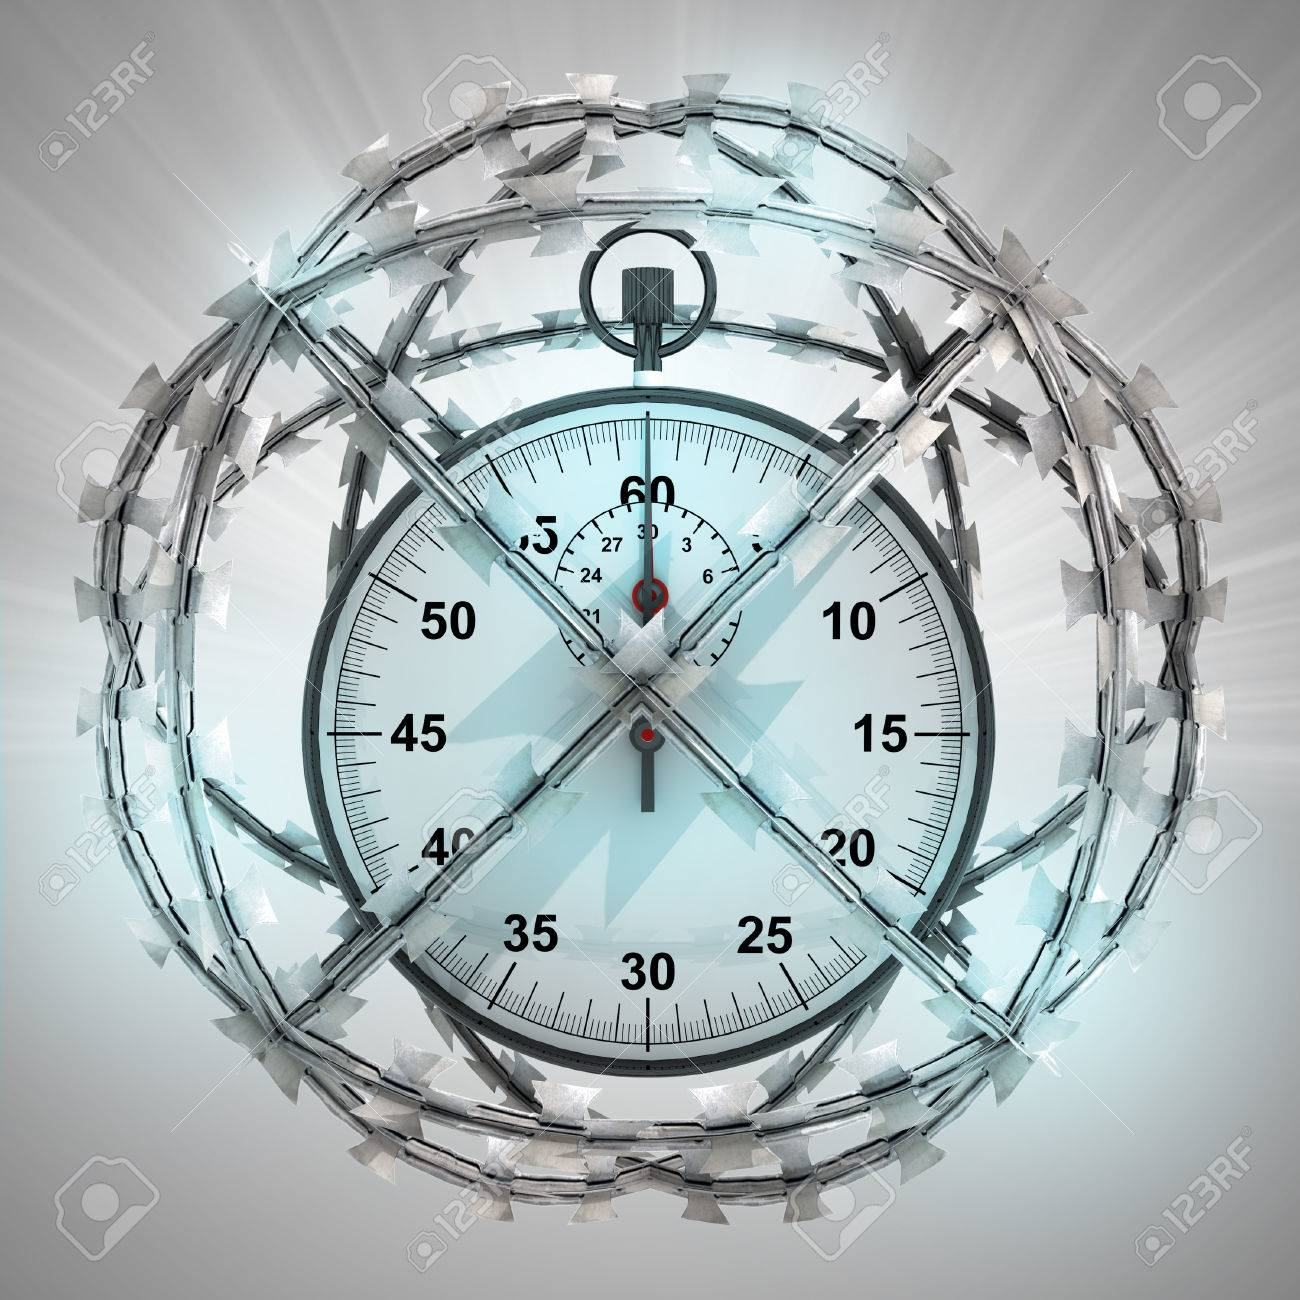 Stopwatch In Barbed Wire Sphere With Flare Illustration Stock Photo ...